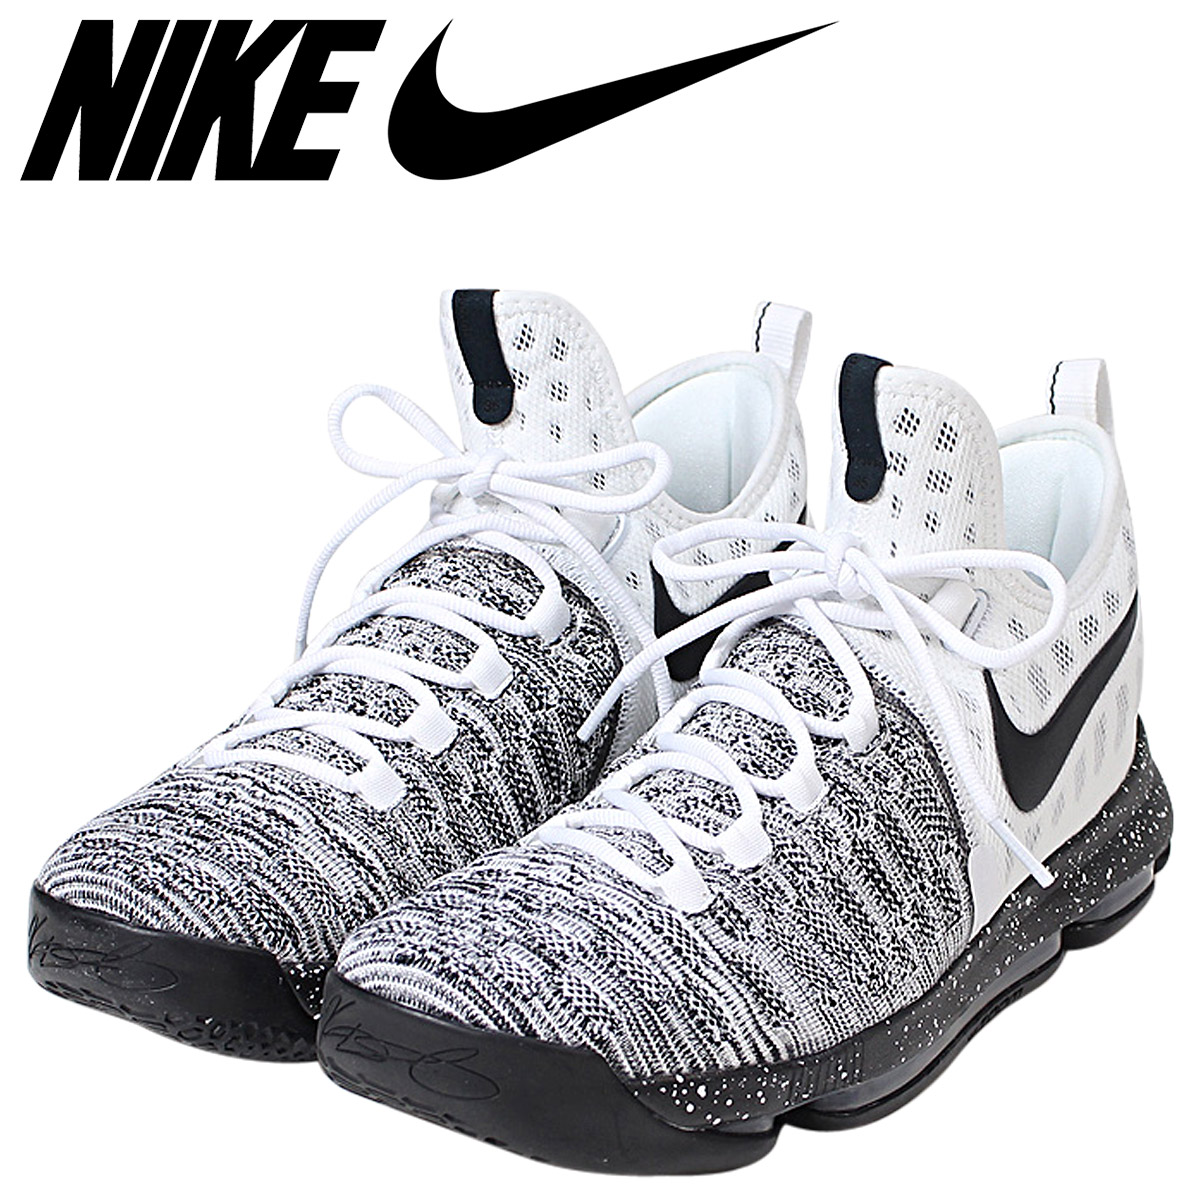 timeless design 49c5a 2e1fb NIKE Nike zoom KD9 sneakers ZOOM KD 9 EP men 844,382-100 Kevin Durant Oreo